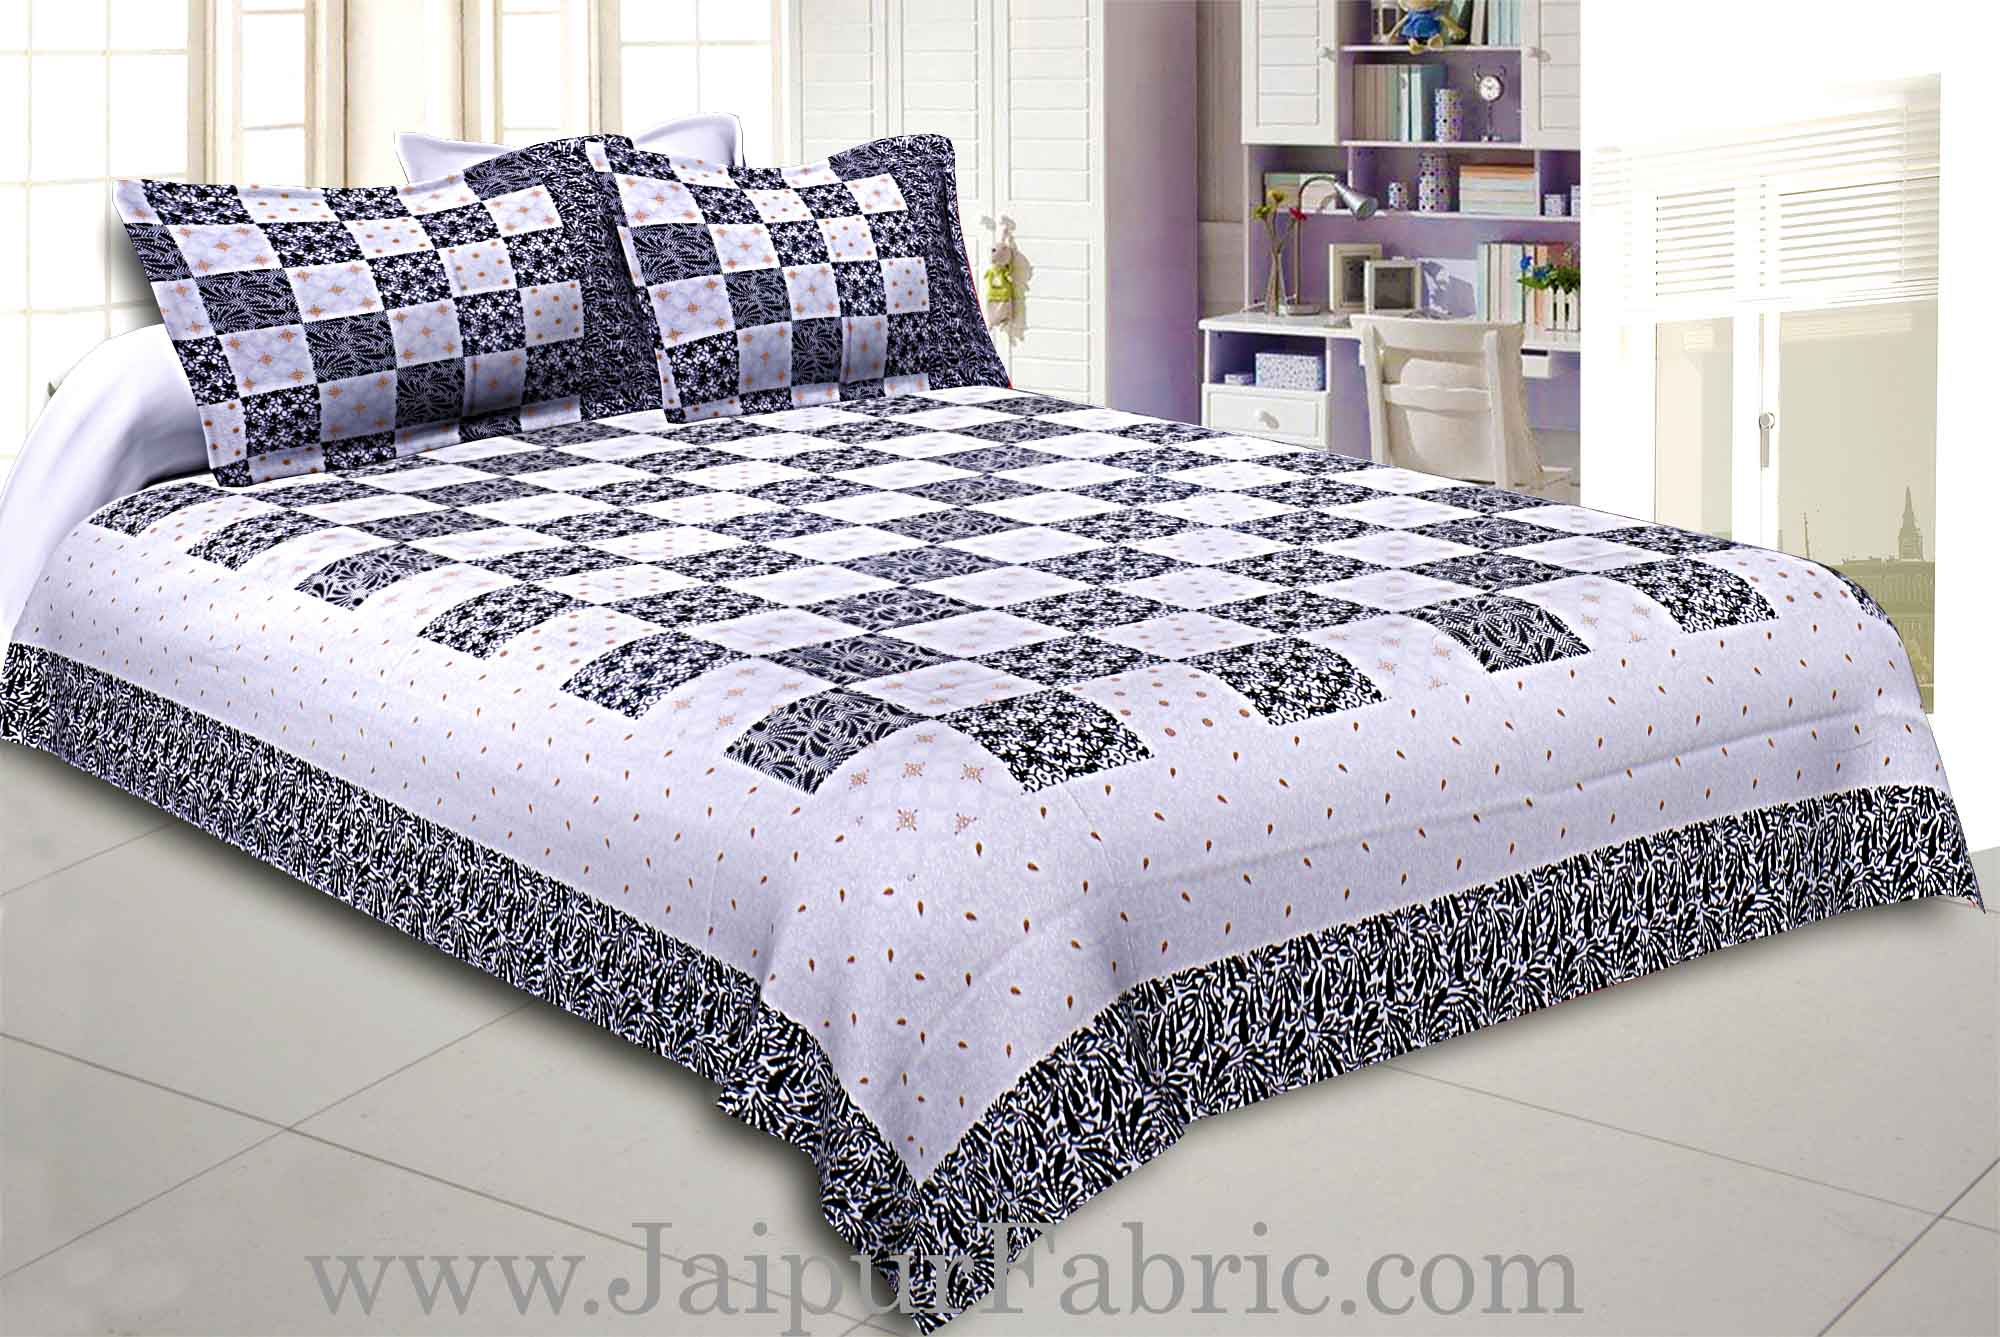 Double Bedsheet Checkered Black Golden Print